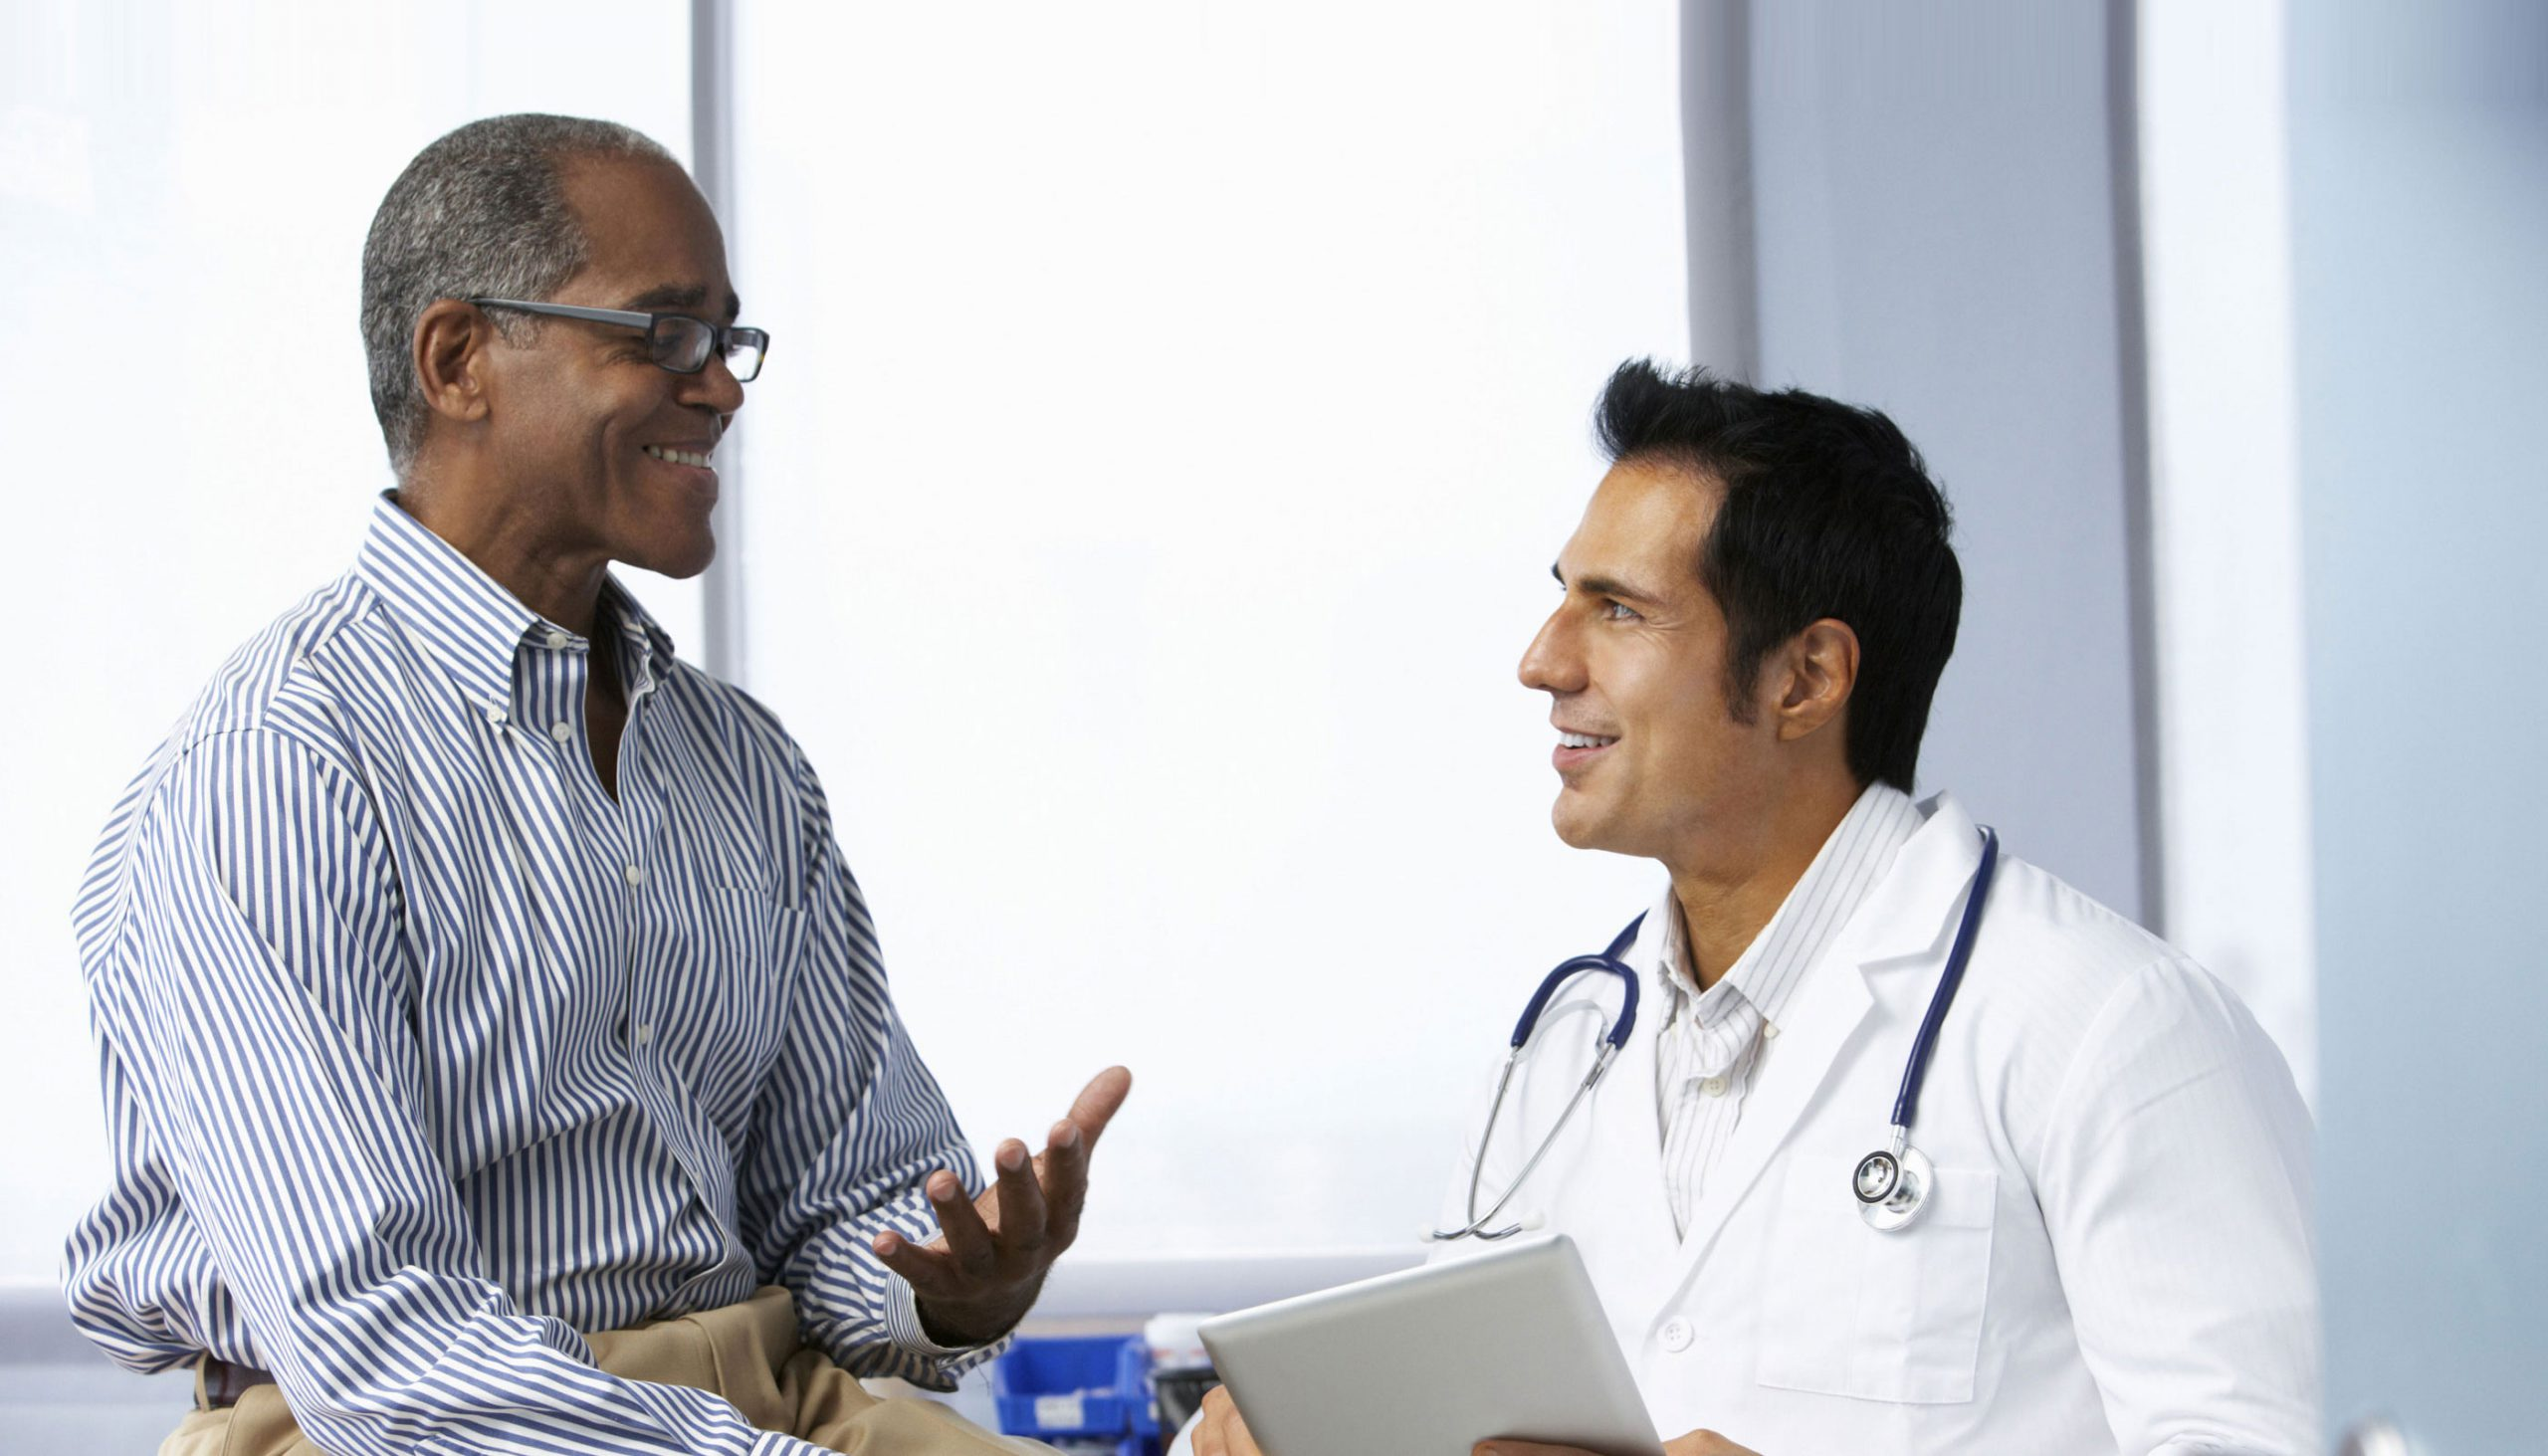 No One Knows You, Like You - Tips for Taking Ownership of Your Healthcare